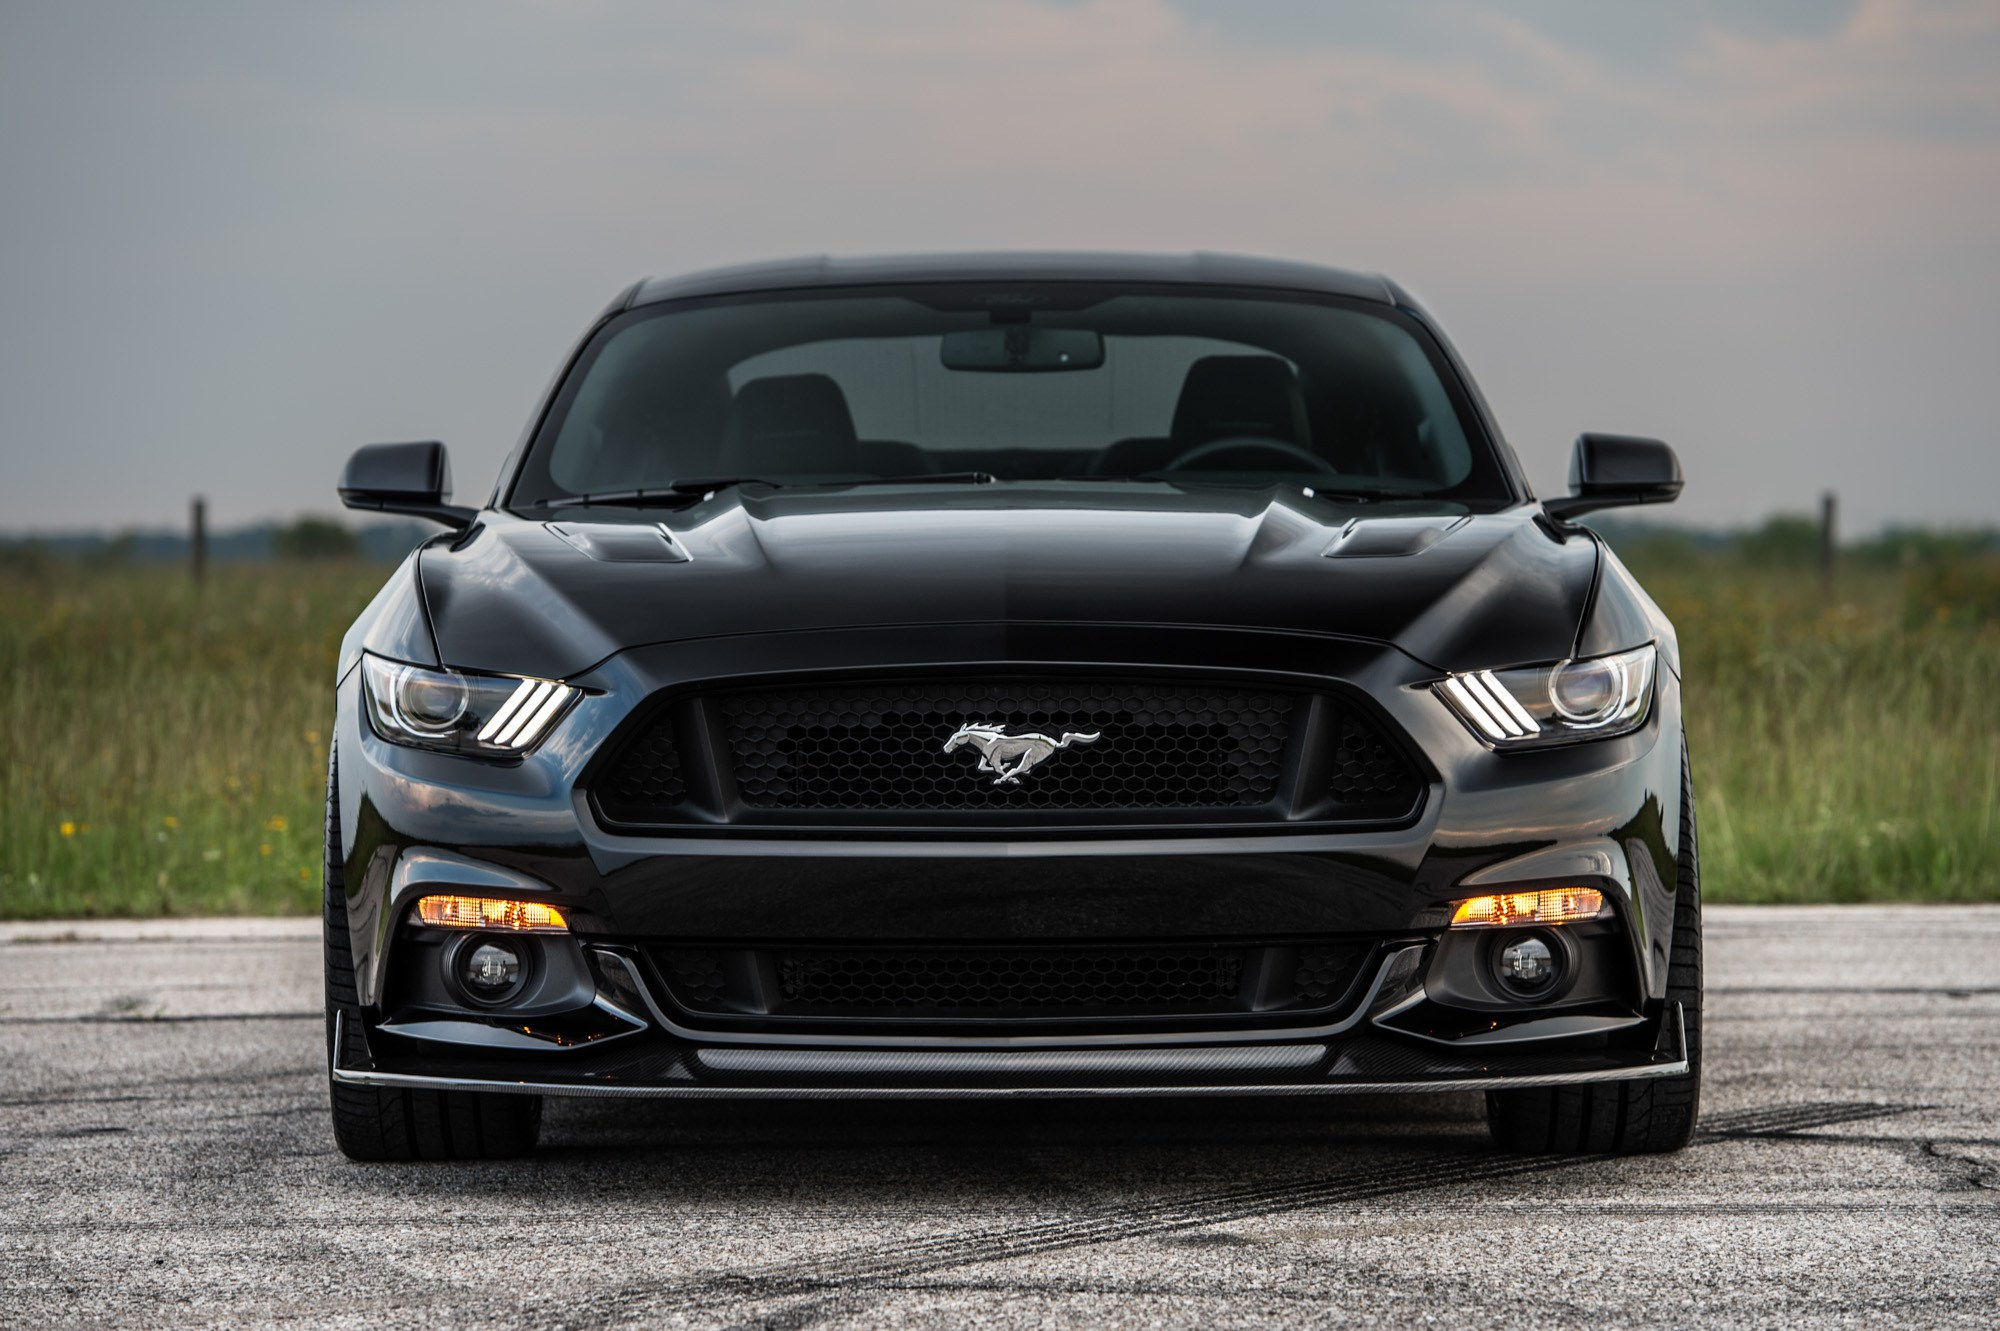 hennessey 25th anniversary edition hpe800 ford mustang is loud and proud autoevolution. Black Bedroom Furniture Sets. Home Design Ideas